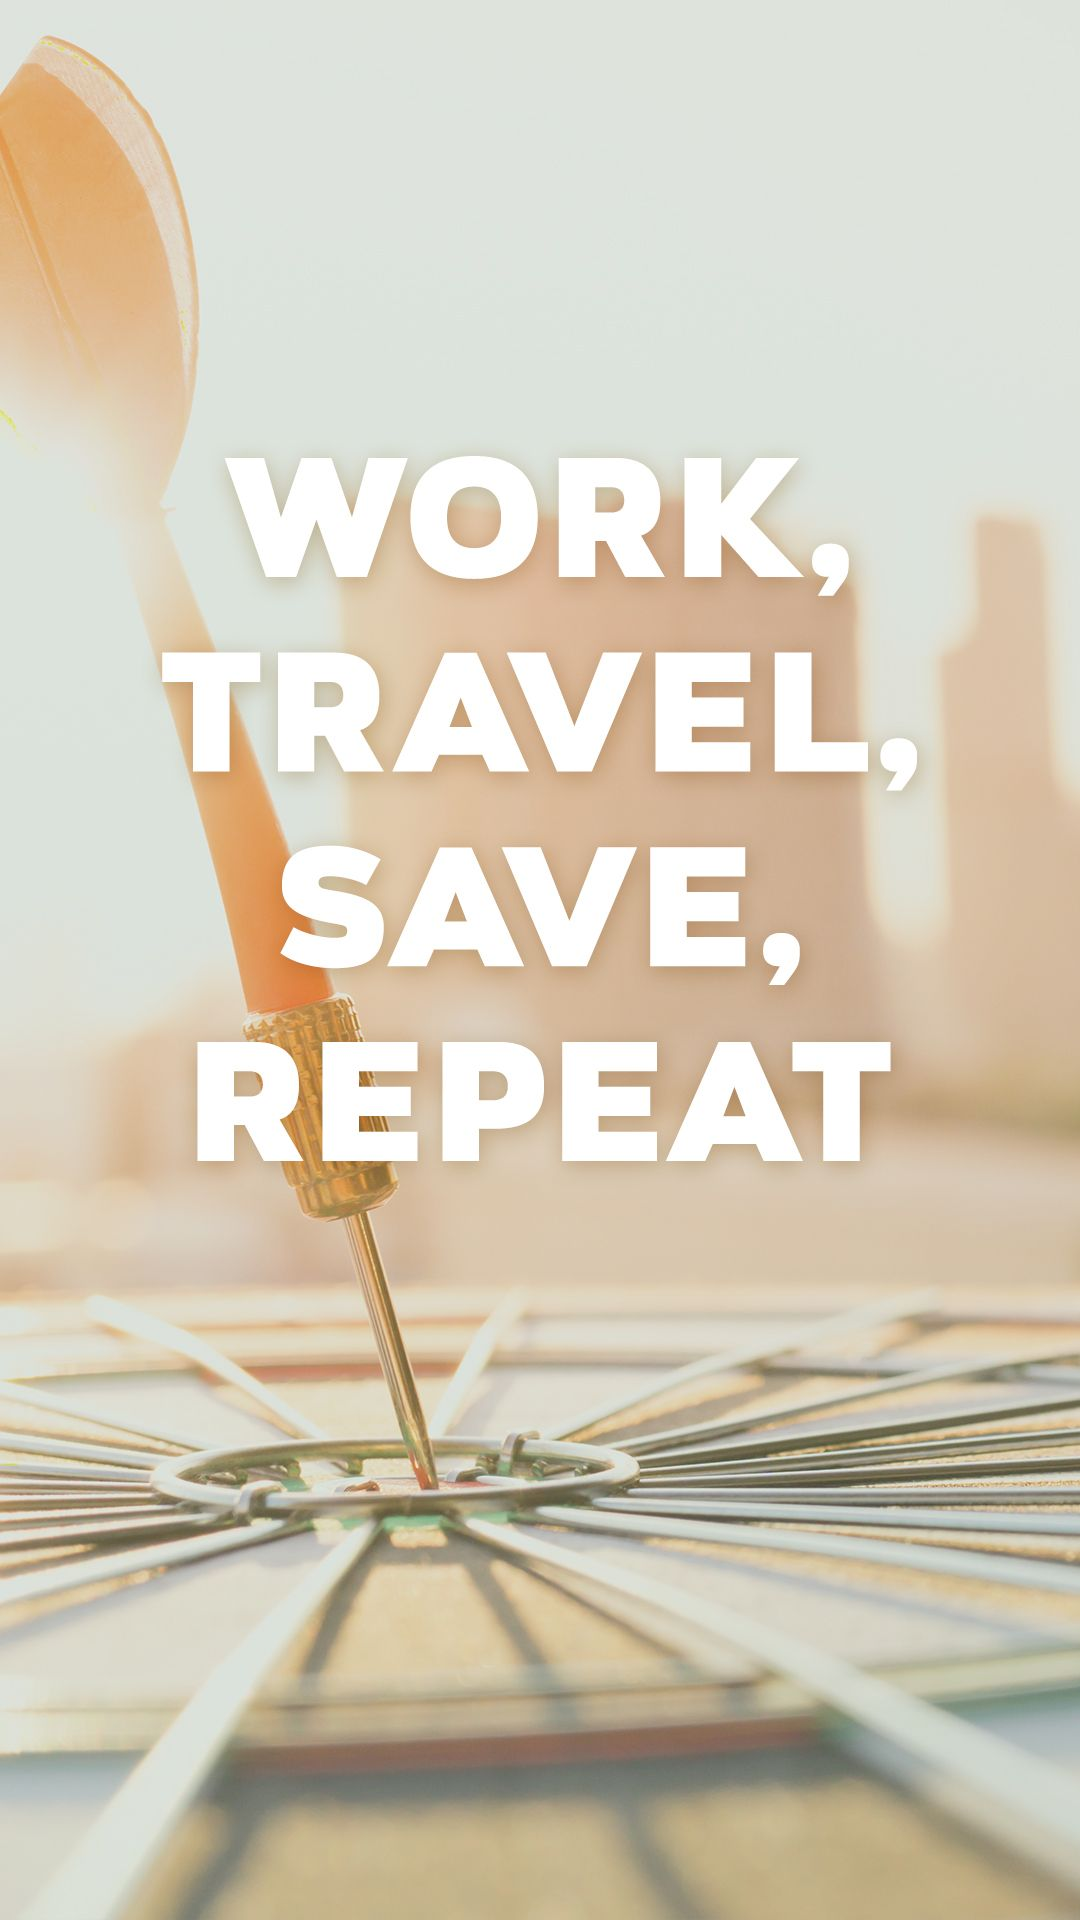 Work Travel Save Repeat Quotes Sayings Travel Inspirational